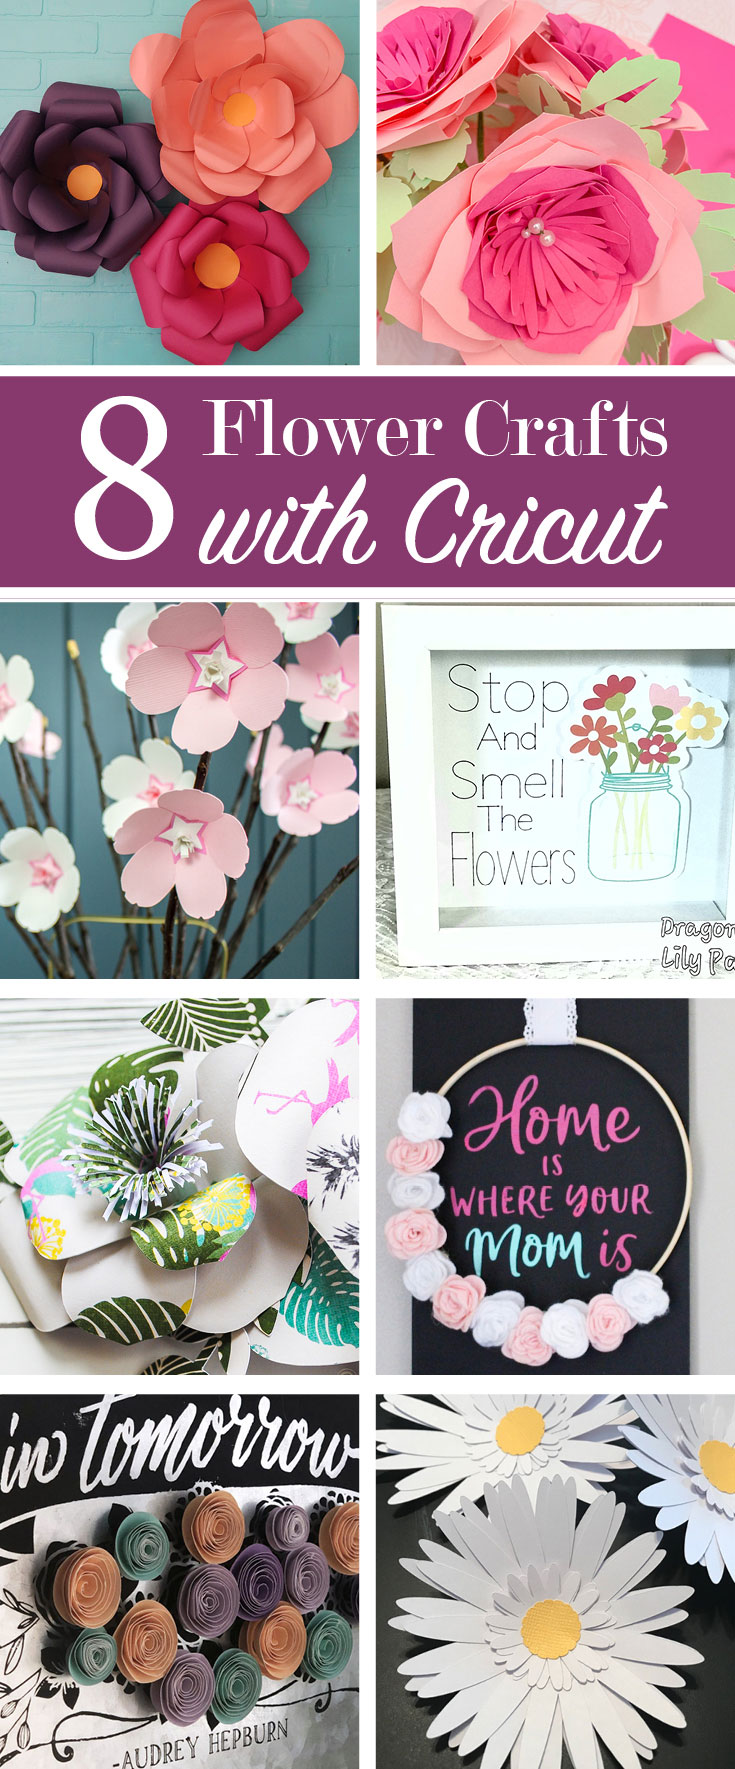 8 Amazing Flowers you can create with a Cricut machine!